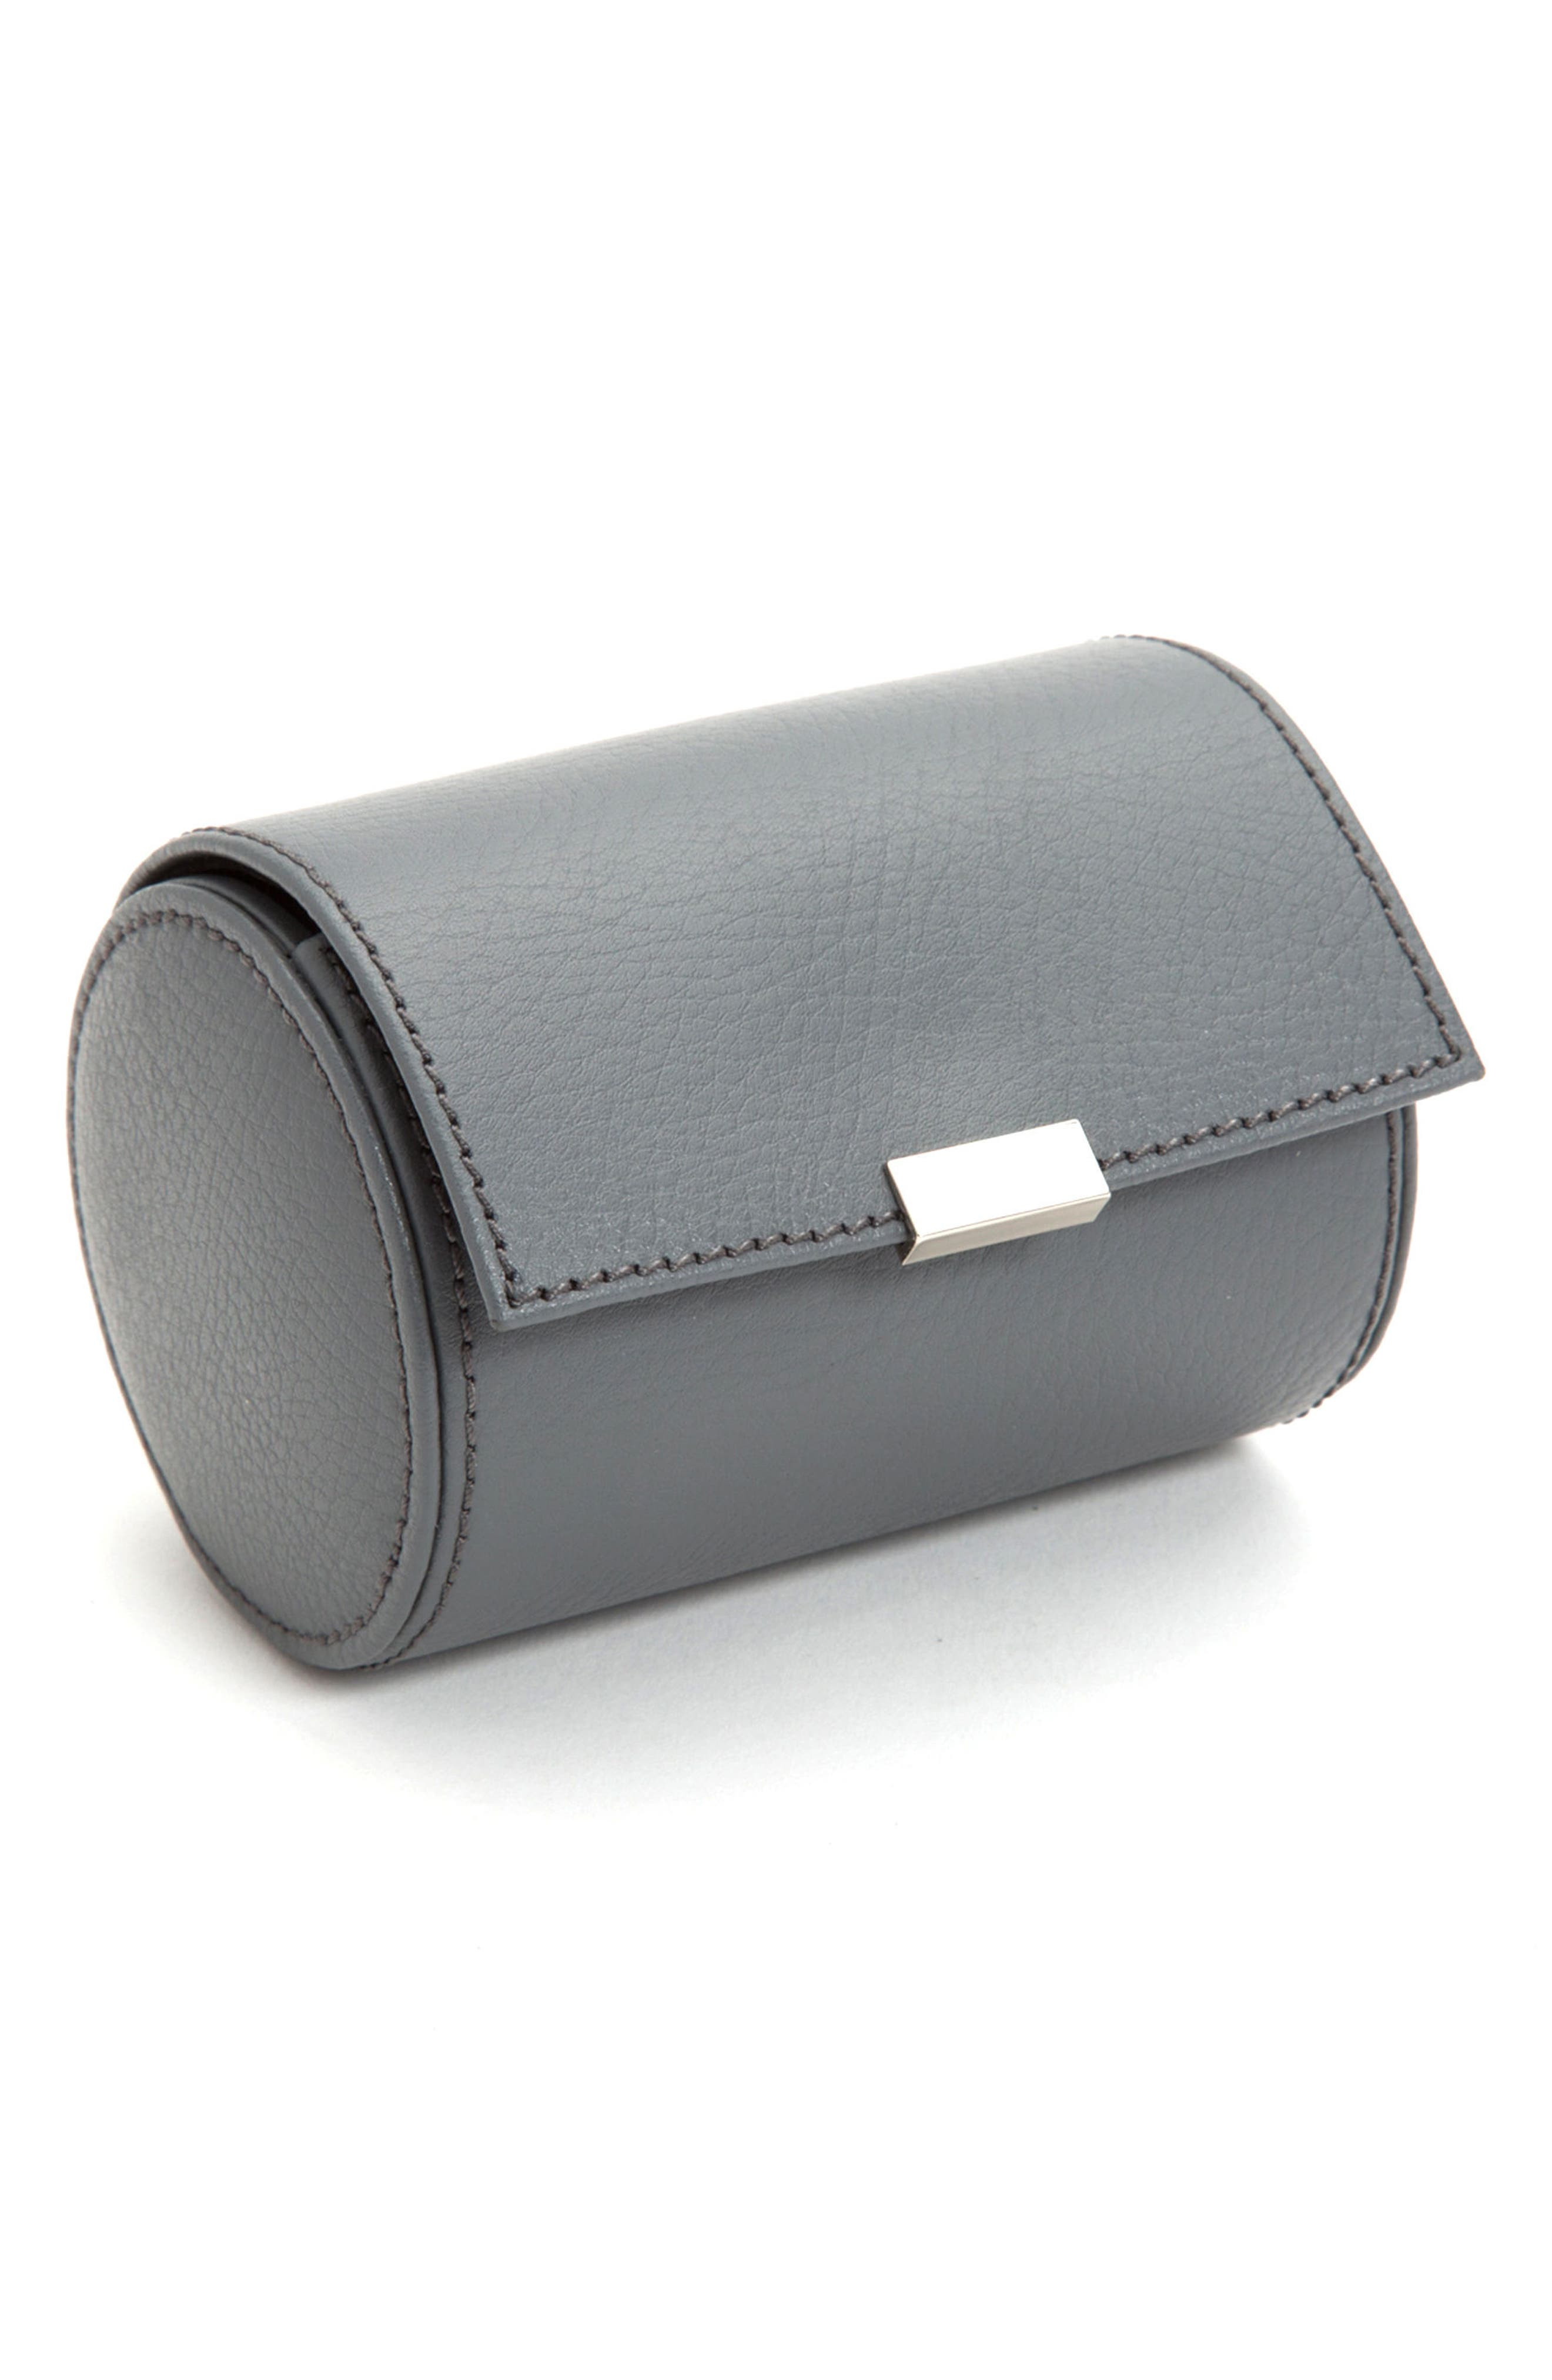 Howard Leather Watch Roll Case,                             Alternate thumbnail 2, color,                             GREY